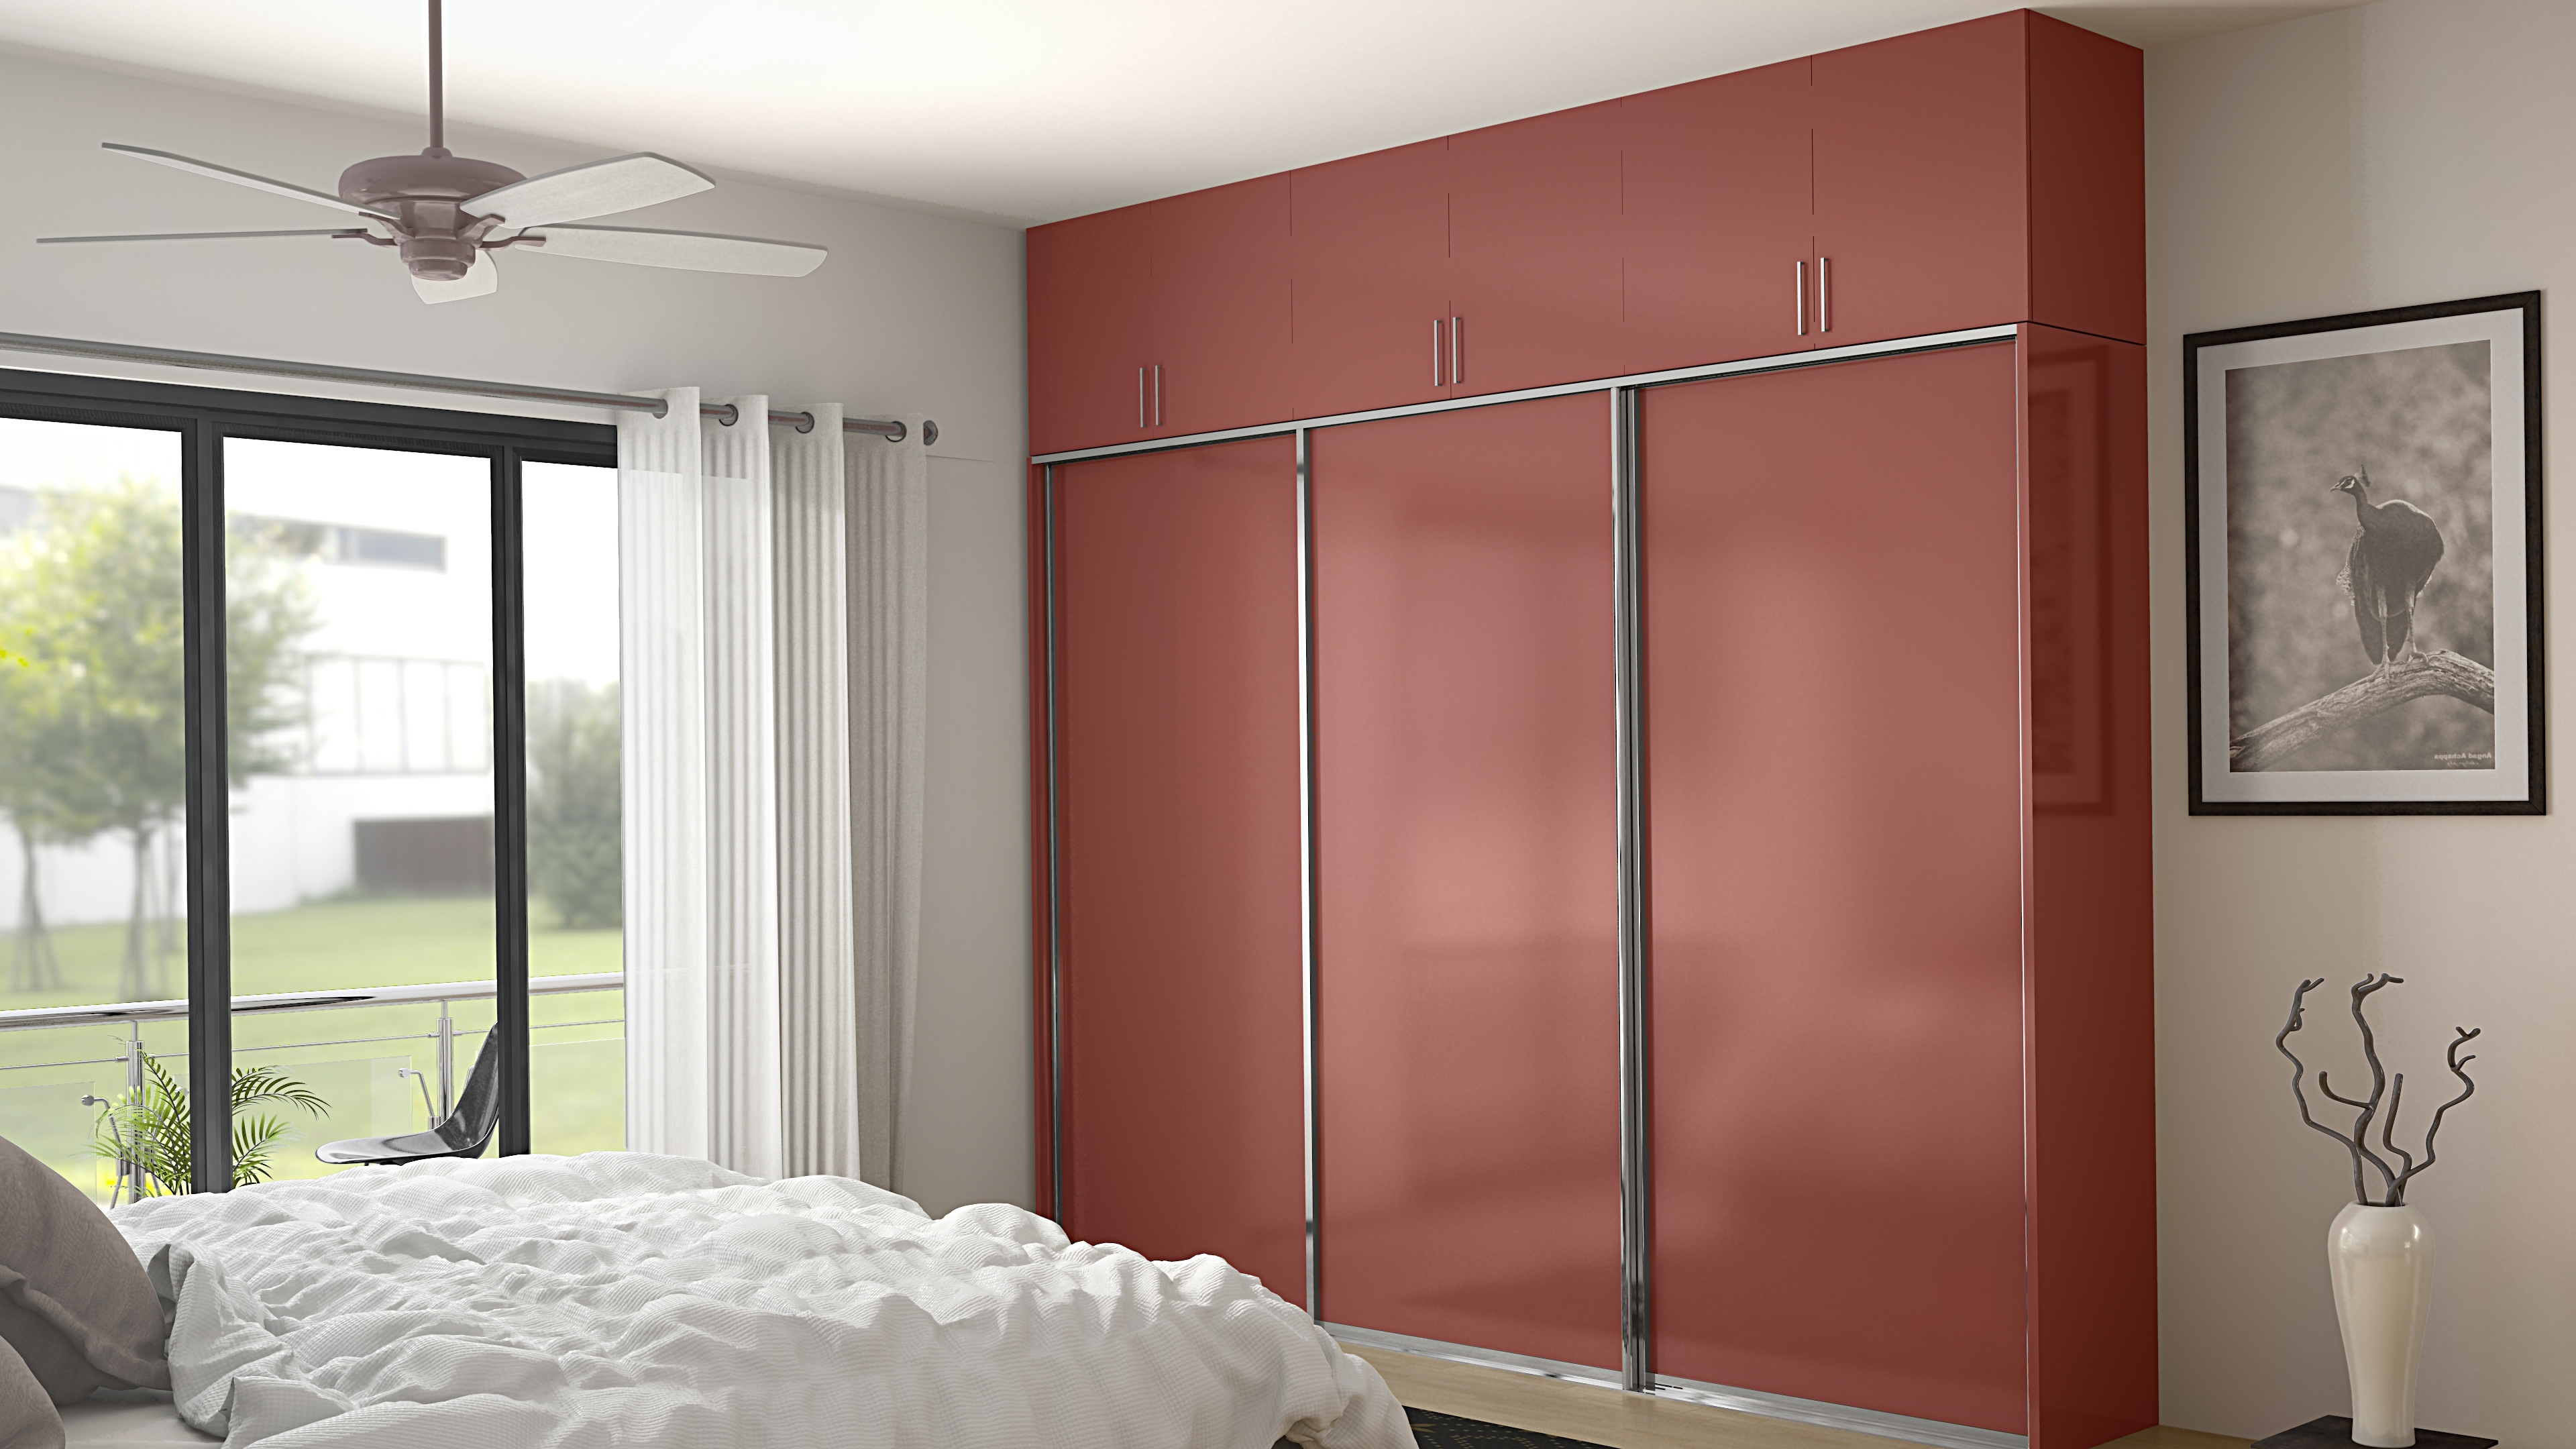 Coloured Wardrobes With Regard To Most Current 6 Trendy Wardrobe Door Designs From Homelane – Homelane Blog (View 8 of 15)